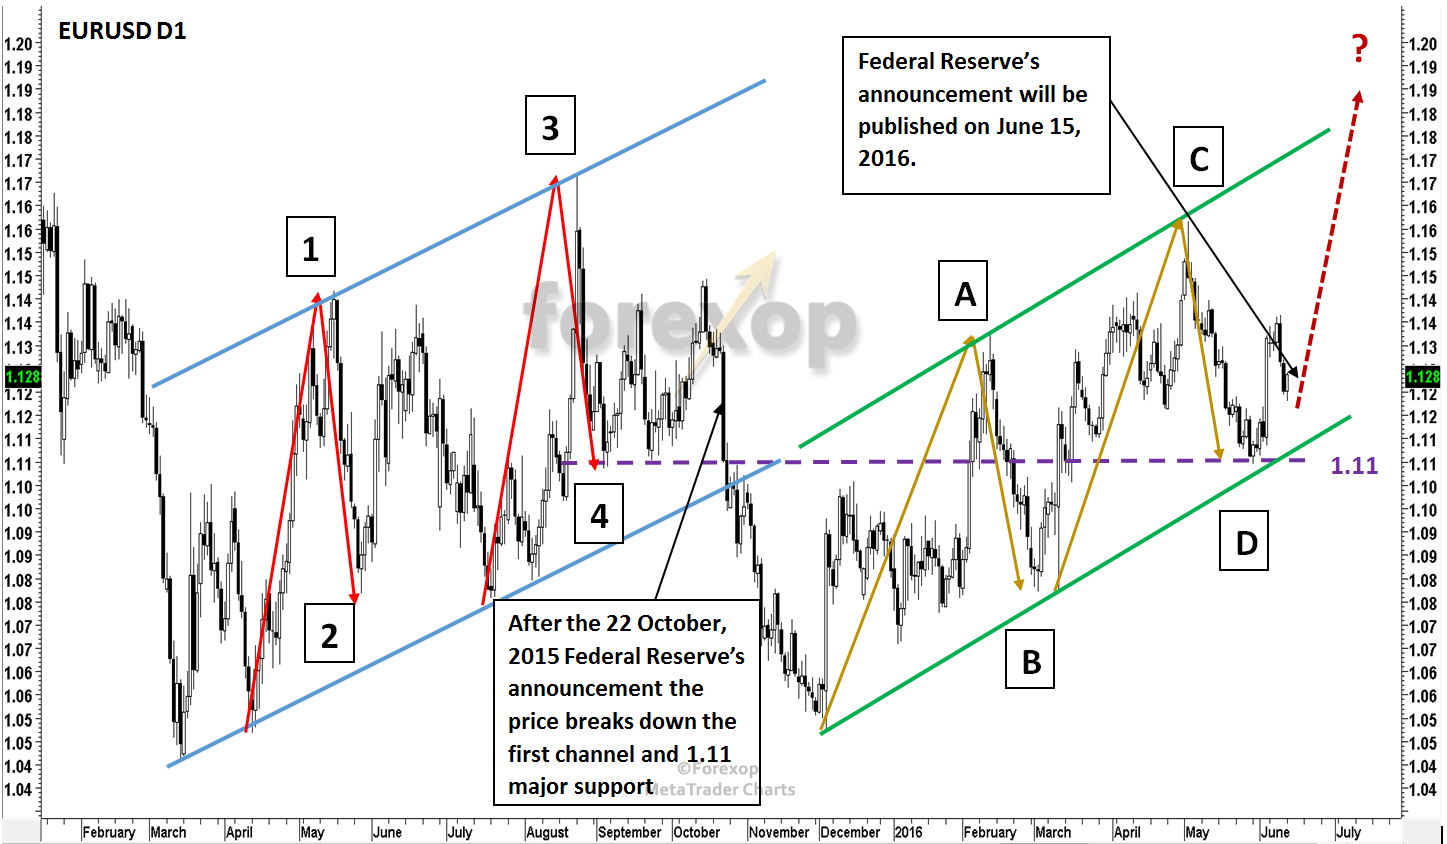 Figure 1: EURUSD significant wave patterns following Fed's announcement